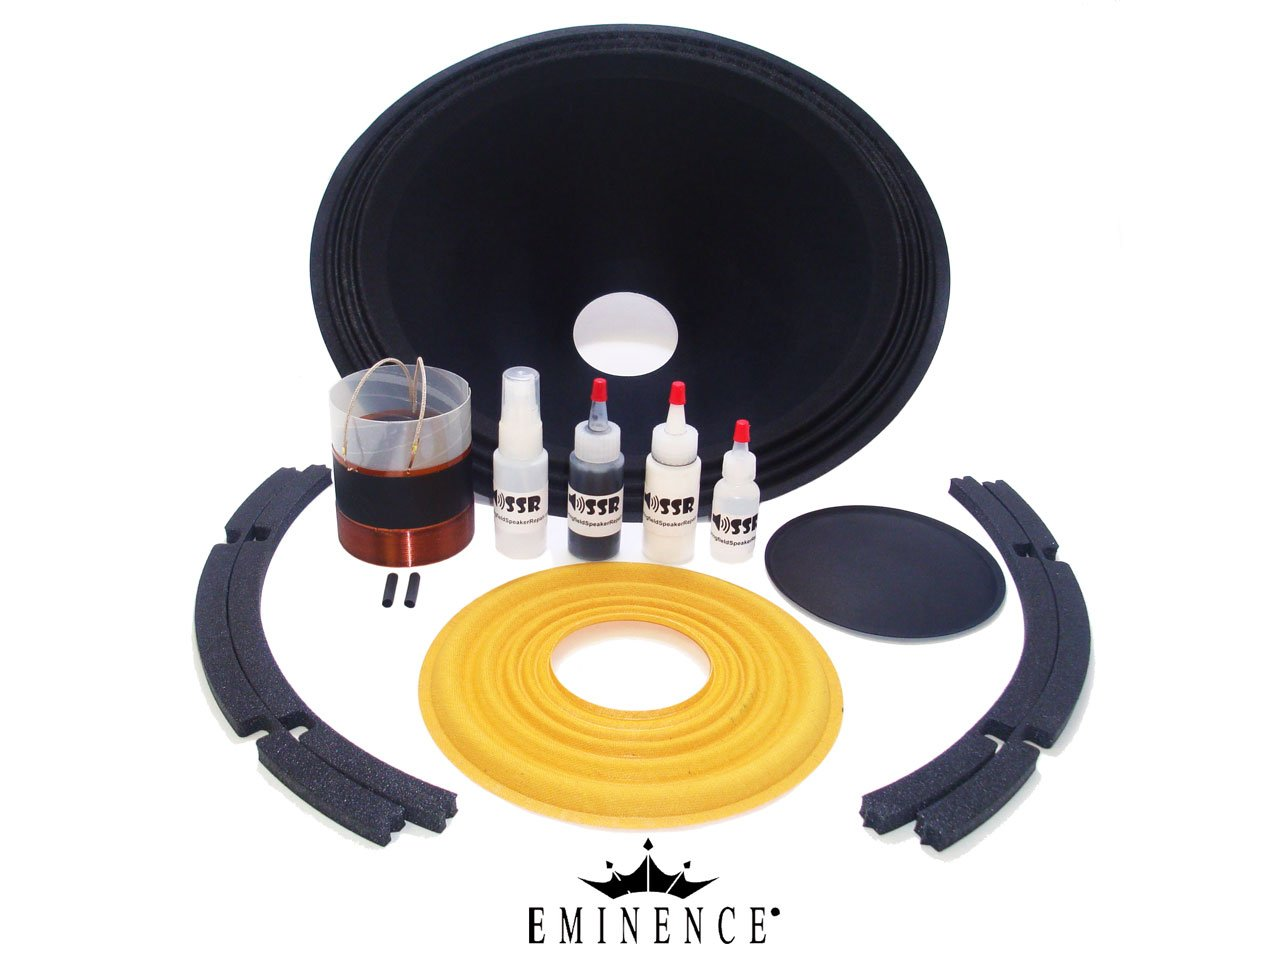 Genuine Eminence Sigma Pro 18A2 Speaker Recone Kit - OEM Factory Parts